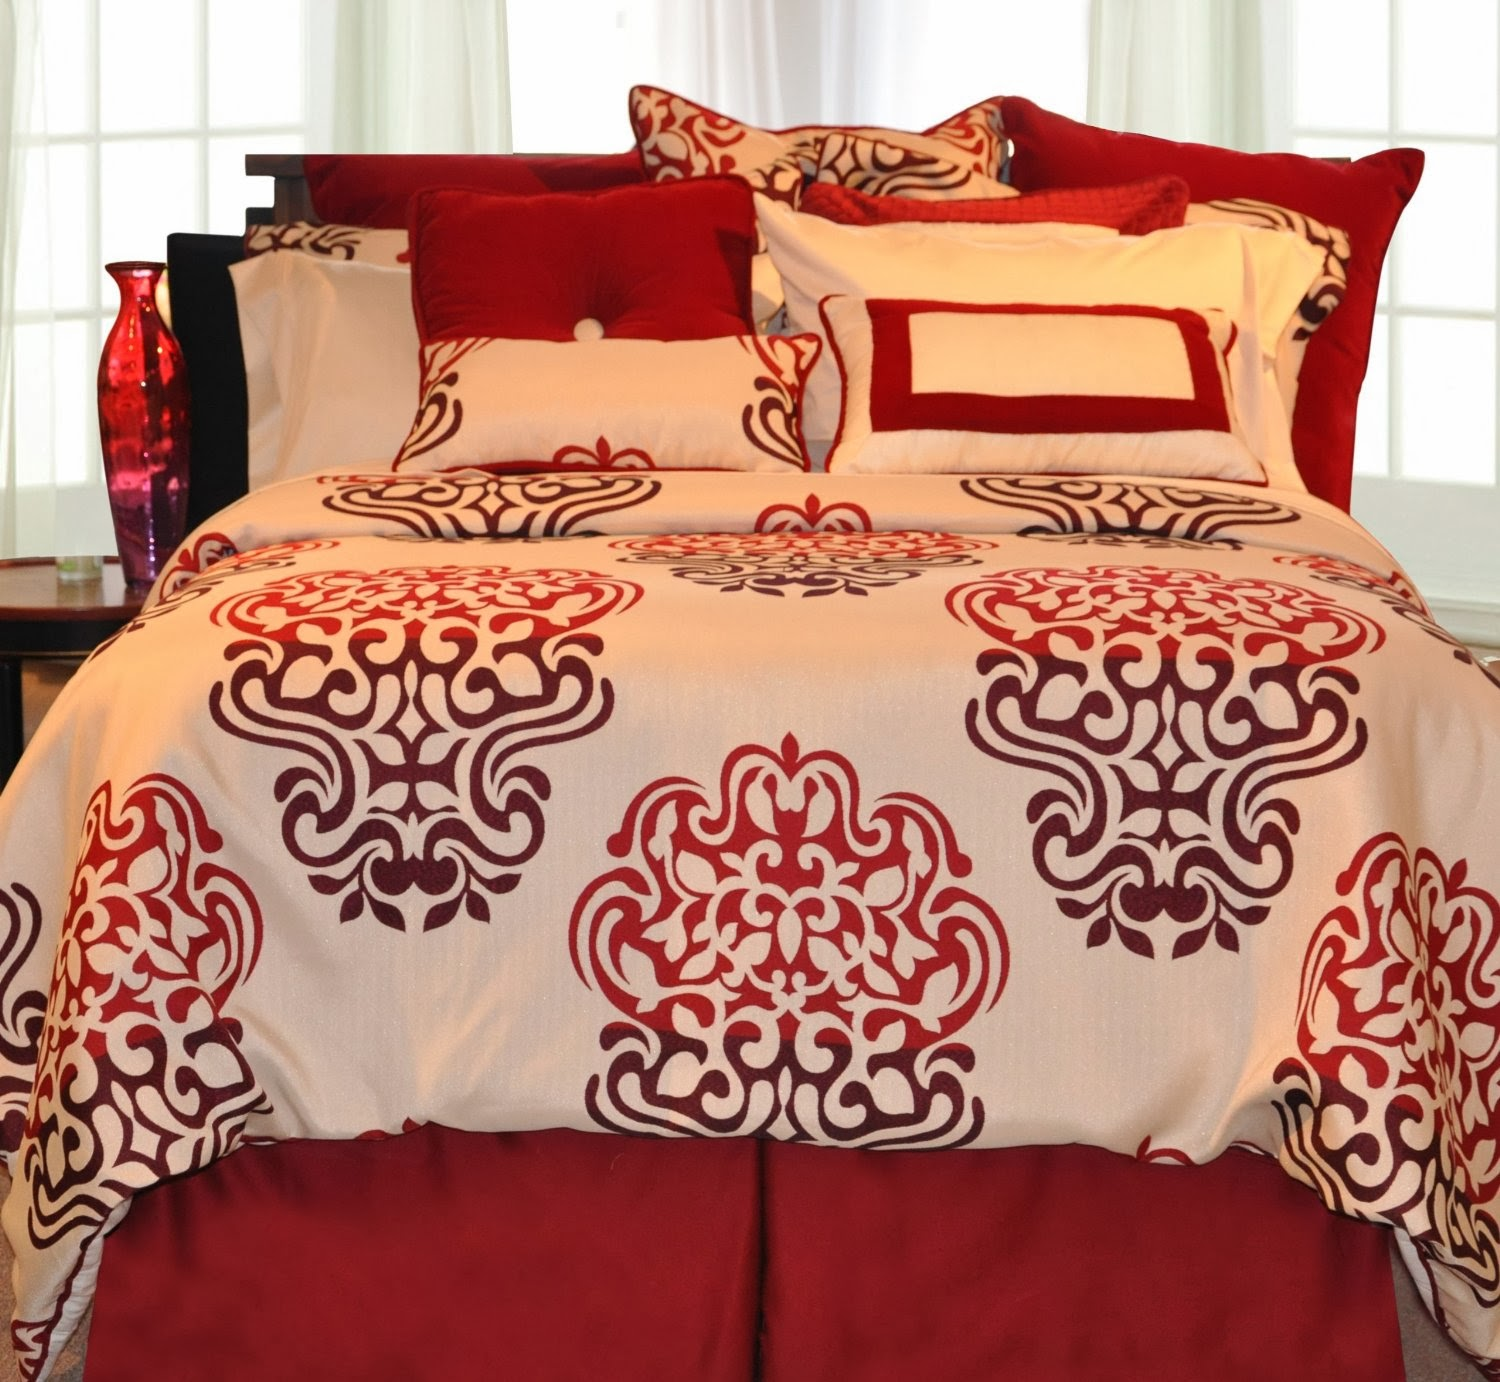 Pointehaven Printed 300 TC 3-Piece 100-Percent Combed Cotton Duvet Set, Cherry Blossom, King